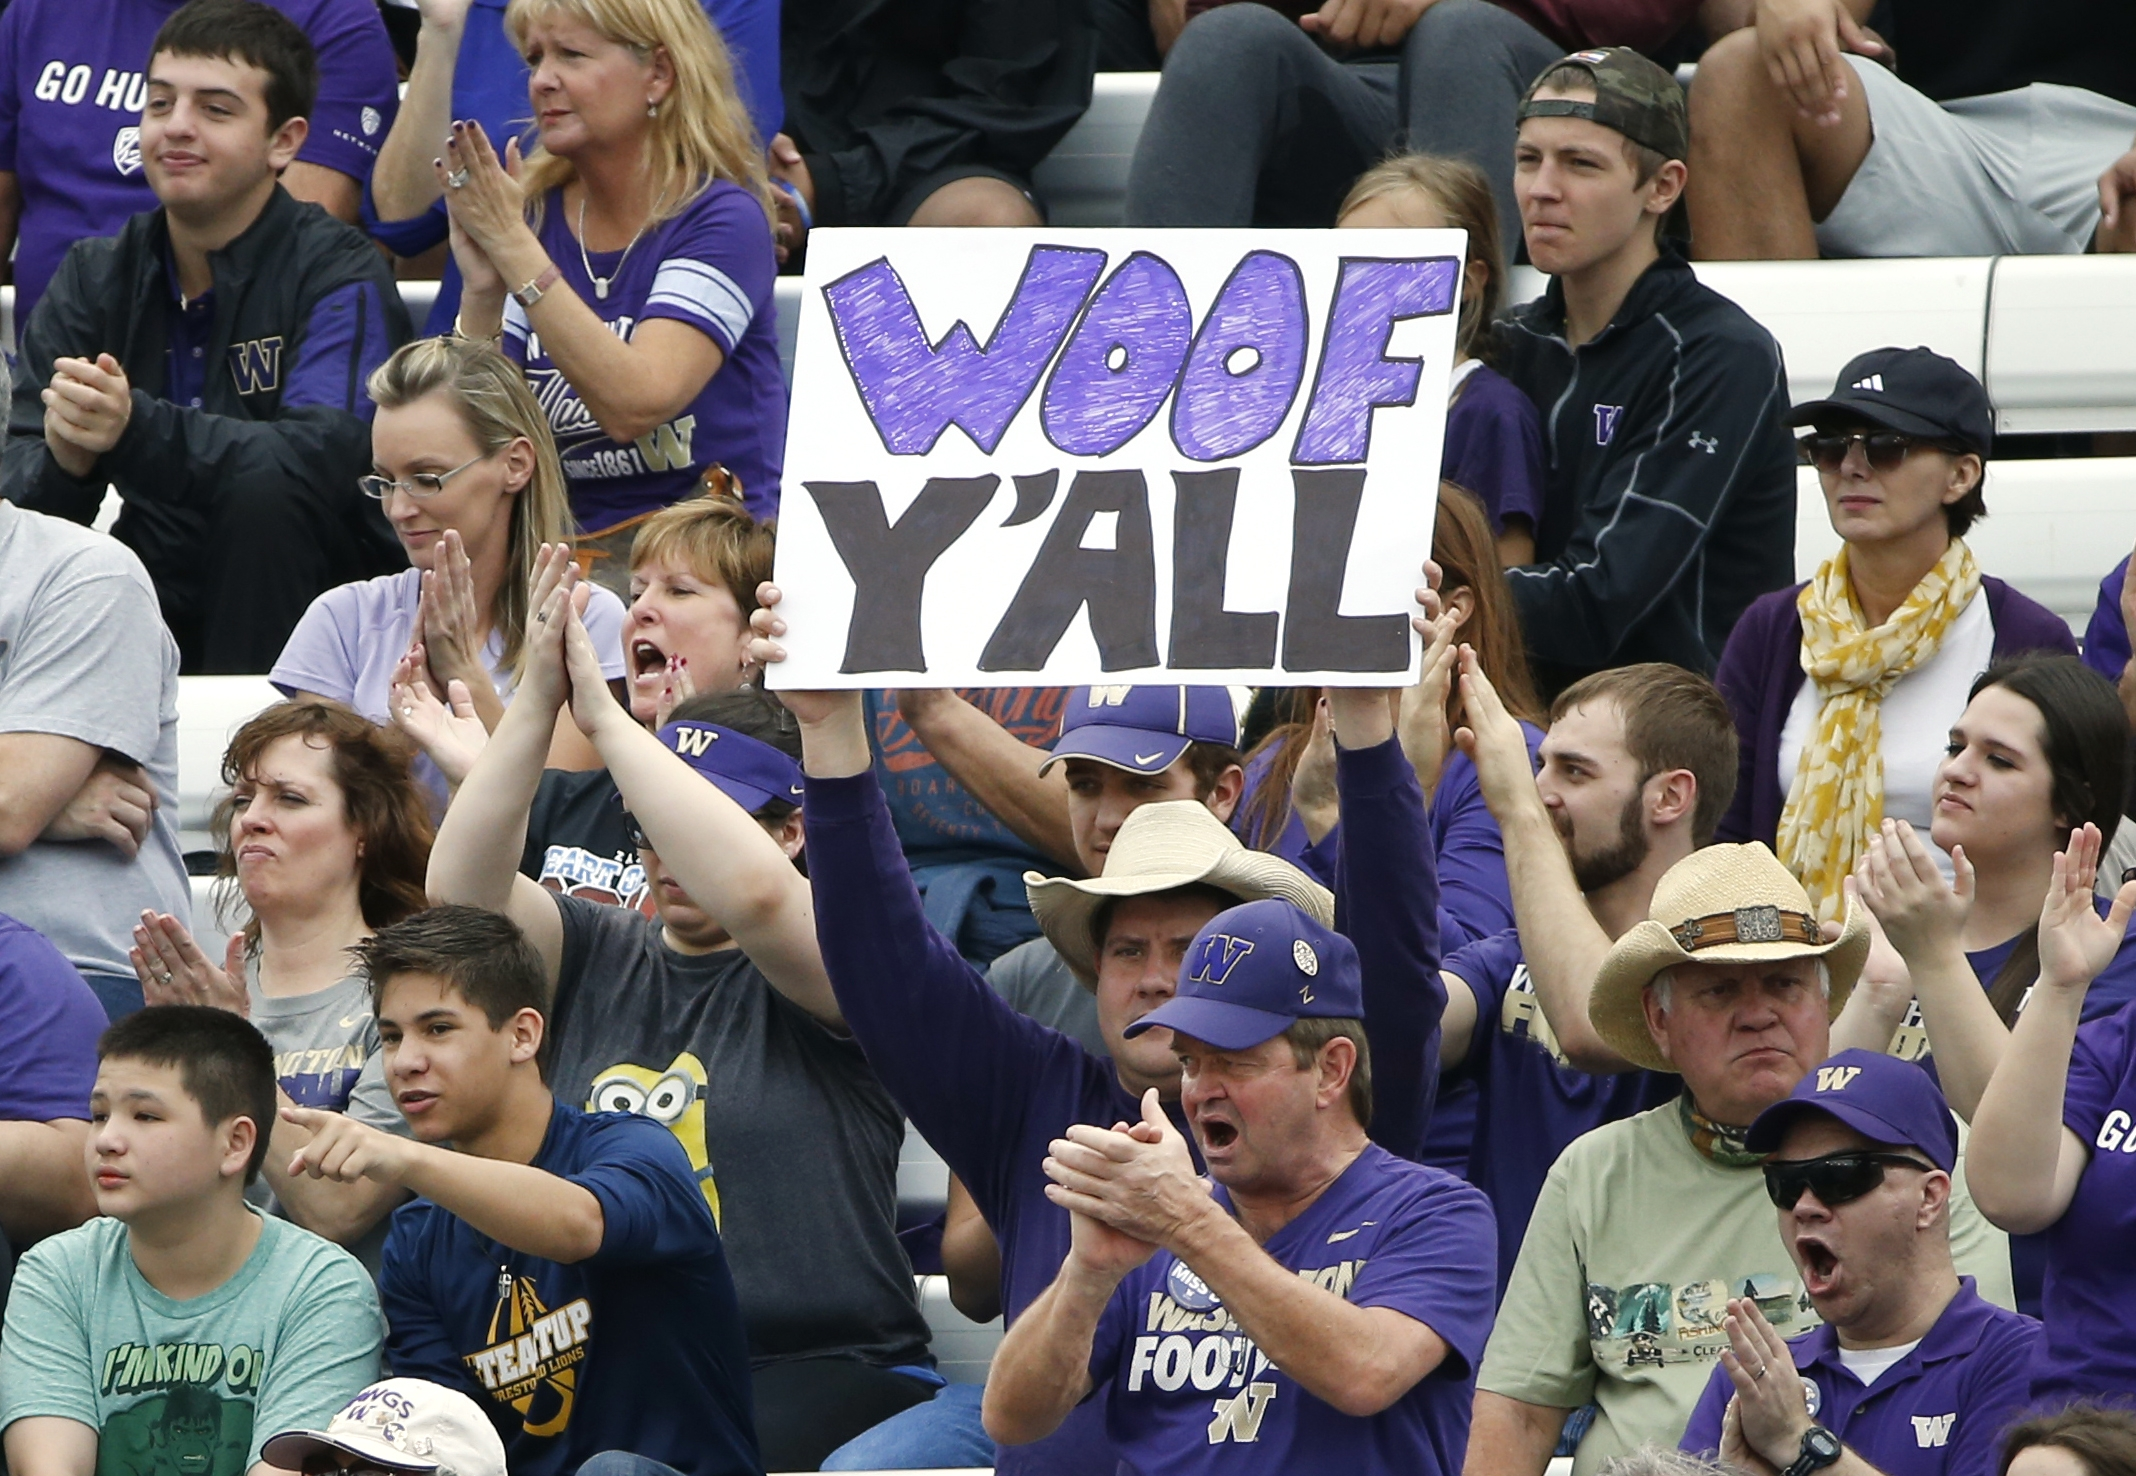 Washington fans cheer for their team against Southern Mississippi during the first half of the Heart of Dallas Bowl NCAA college football game, Saturday, Dec. 26, 2015, in Dallas. (AP Photo/Ron Jenkins)